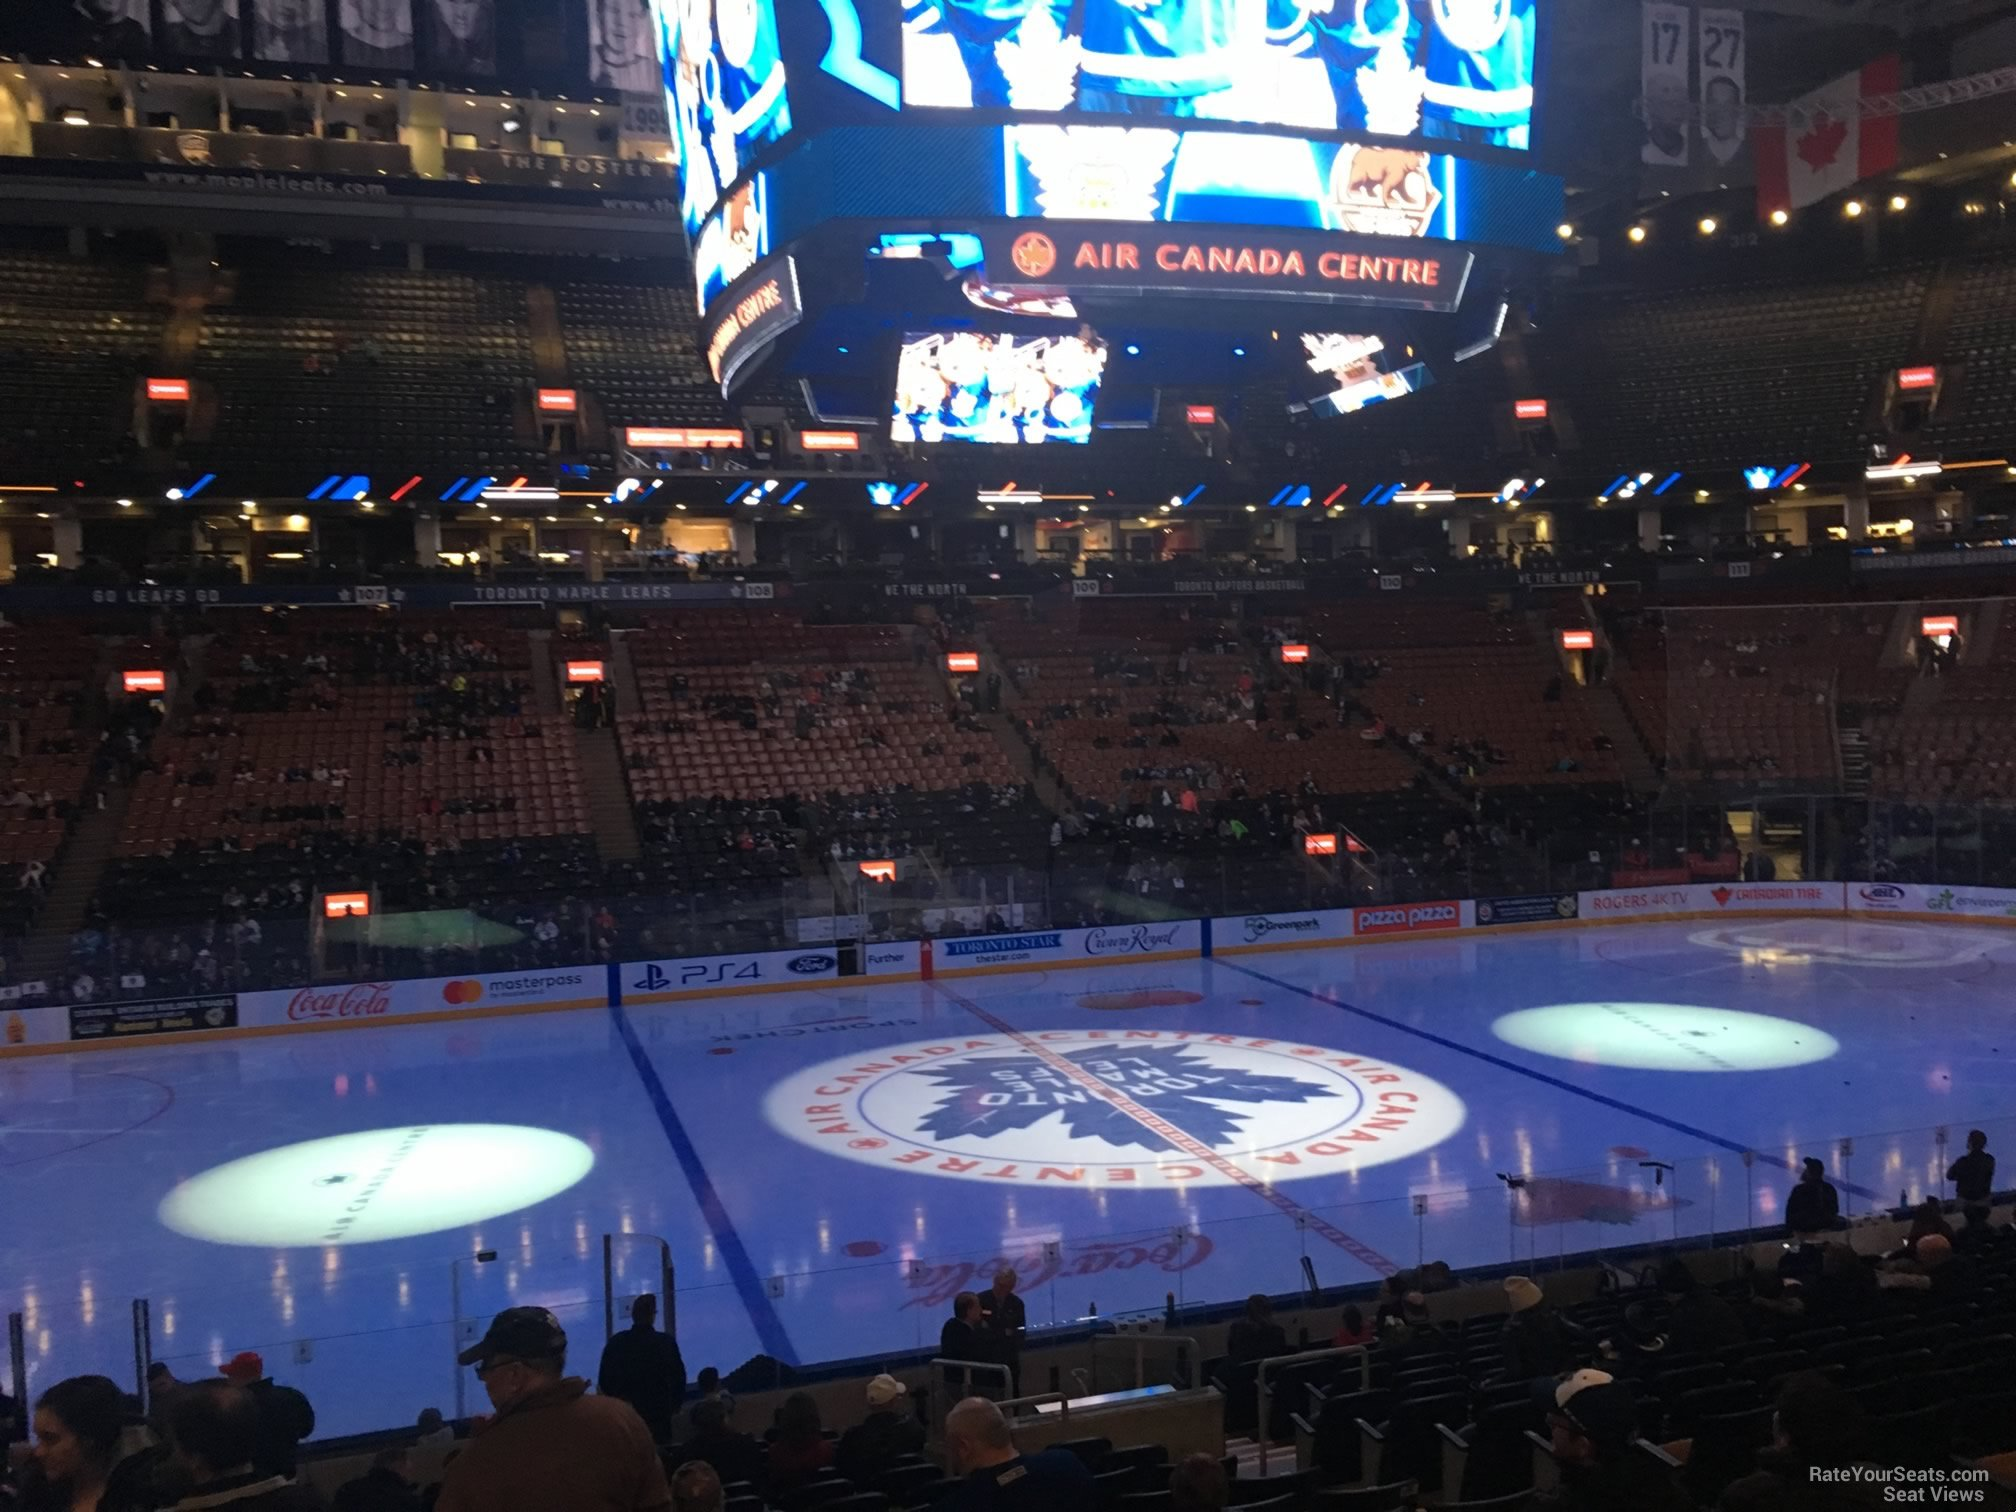 Toronto Maple Leafs Seat View for Scotiabank Arena Section 120, Row 20